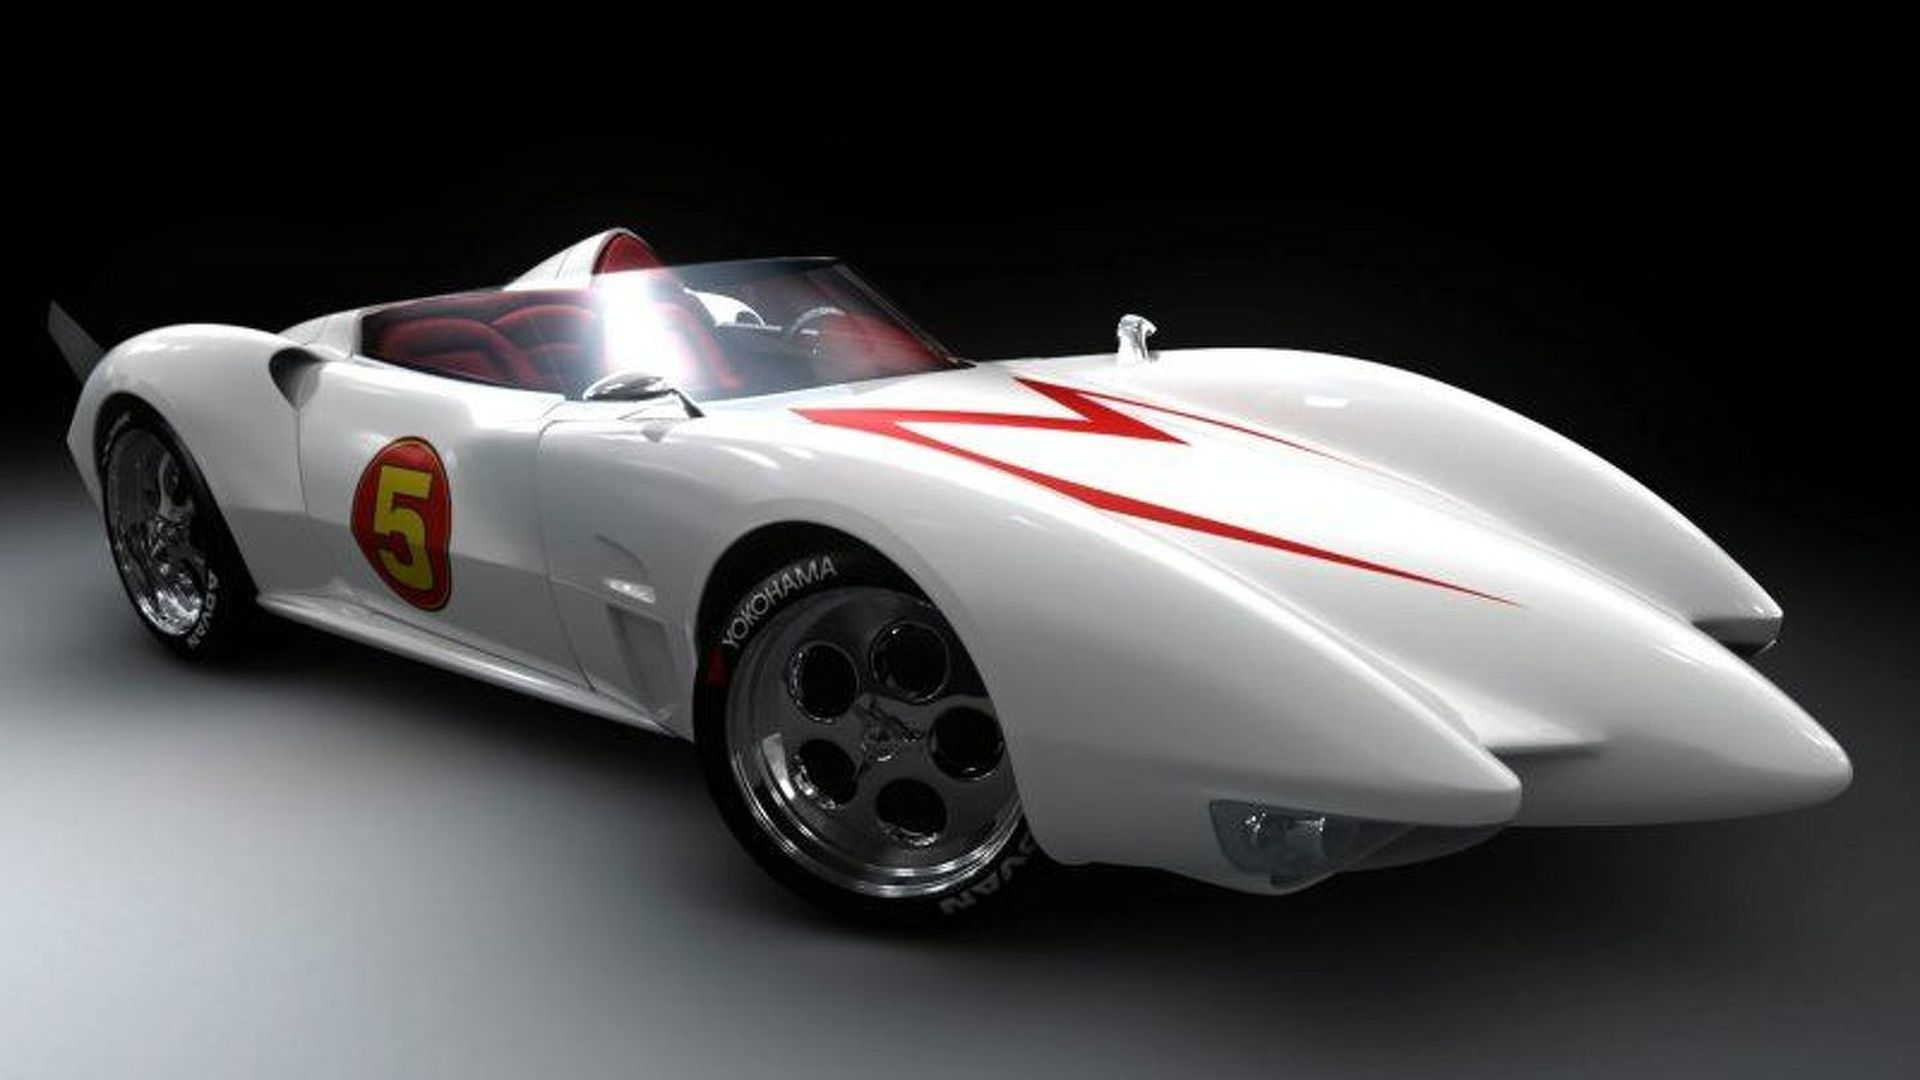 Speed Racer Lives Again on the Big Screen